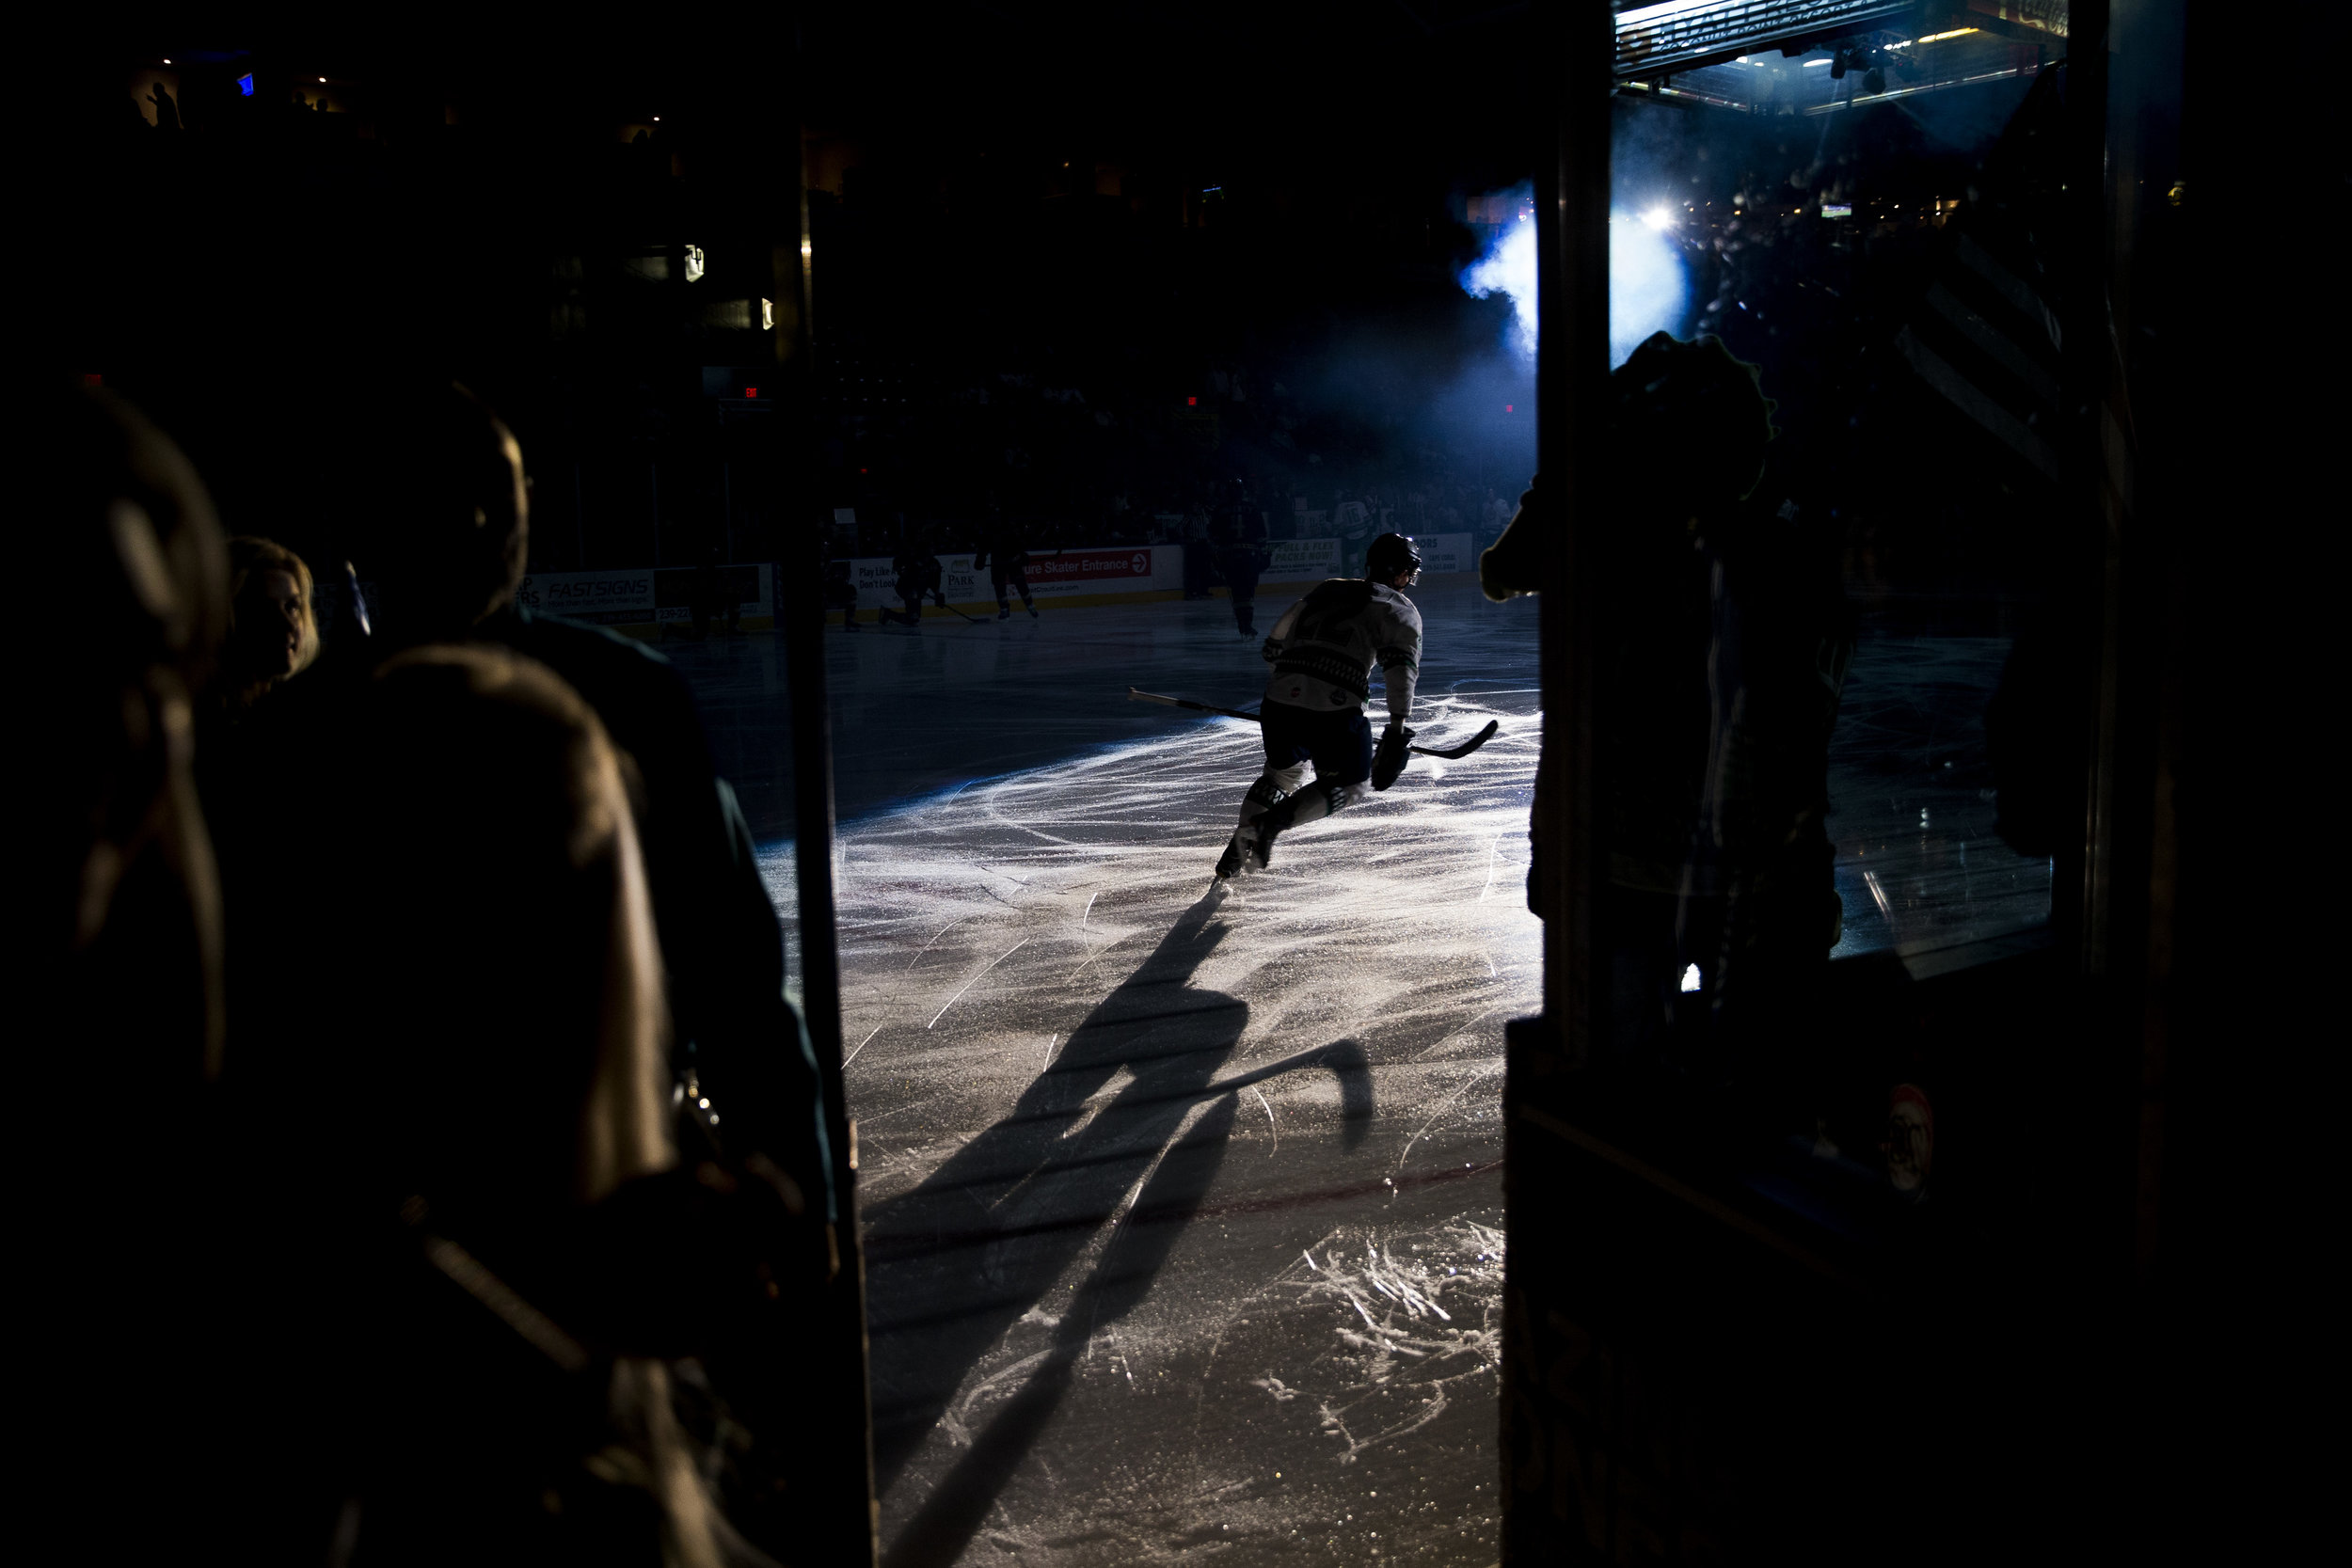 Florida Everblades' Clark Seymour (22) takes to the ice prior to their matchup with the Atlanta Gladiators during the first period of game one of the first round of the ECHL playoffs at Germain Arena Monday, April 16, 2018 in Estero, Fla.